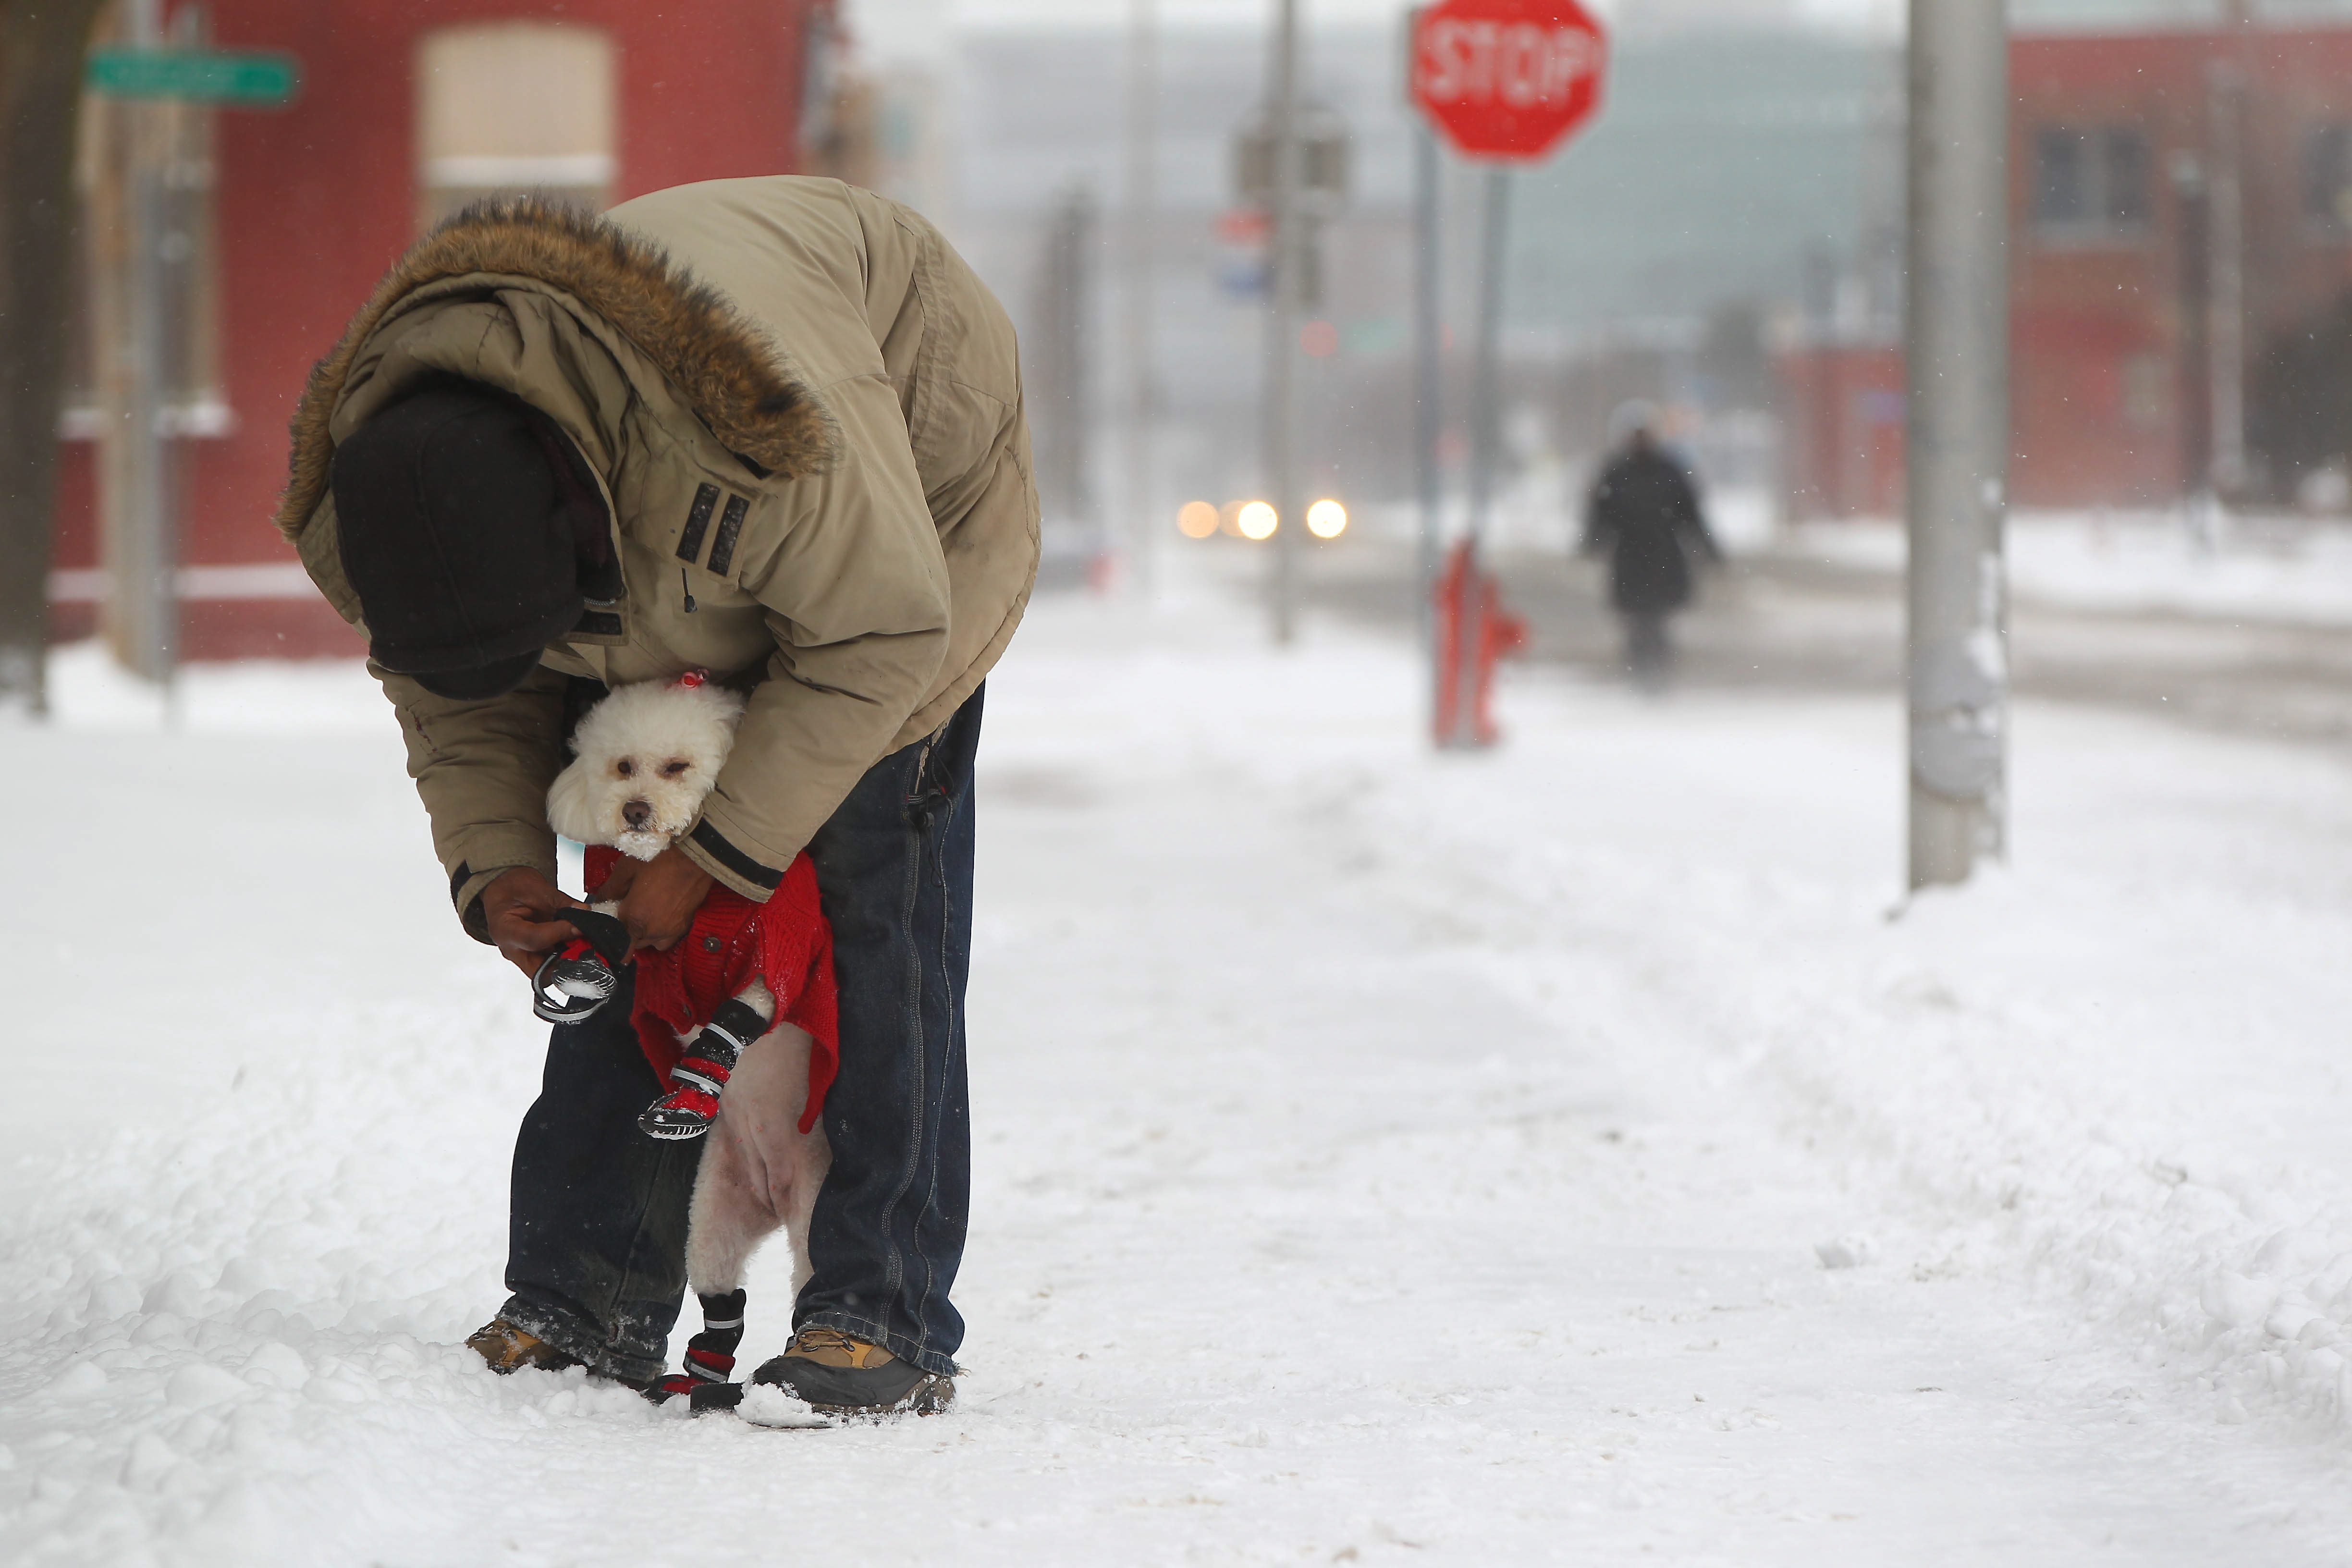 Joe Moore tightens the shoes on his dog Teddy as they walk on Perry St in Buffalo Friday, February 12, 2016.   (Mark Mulville/Buffalo News)